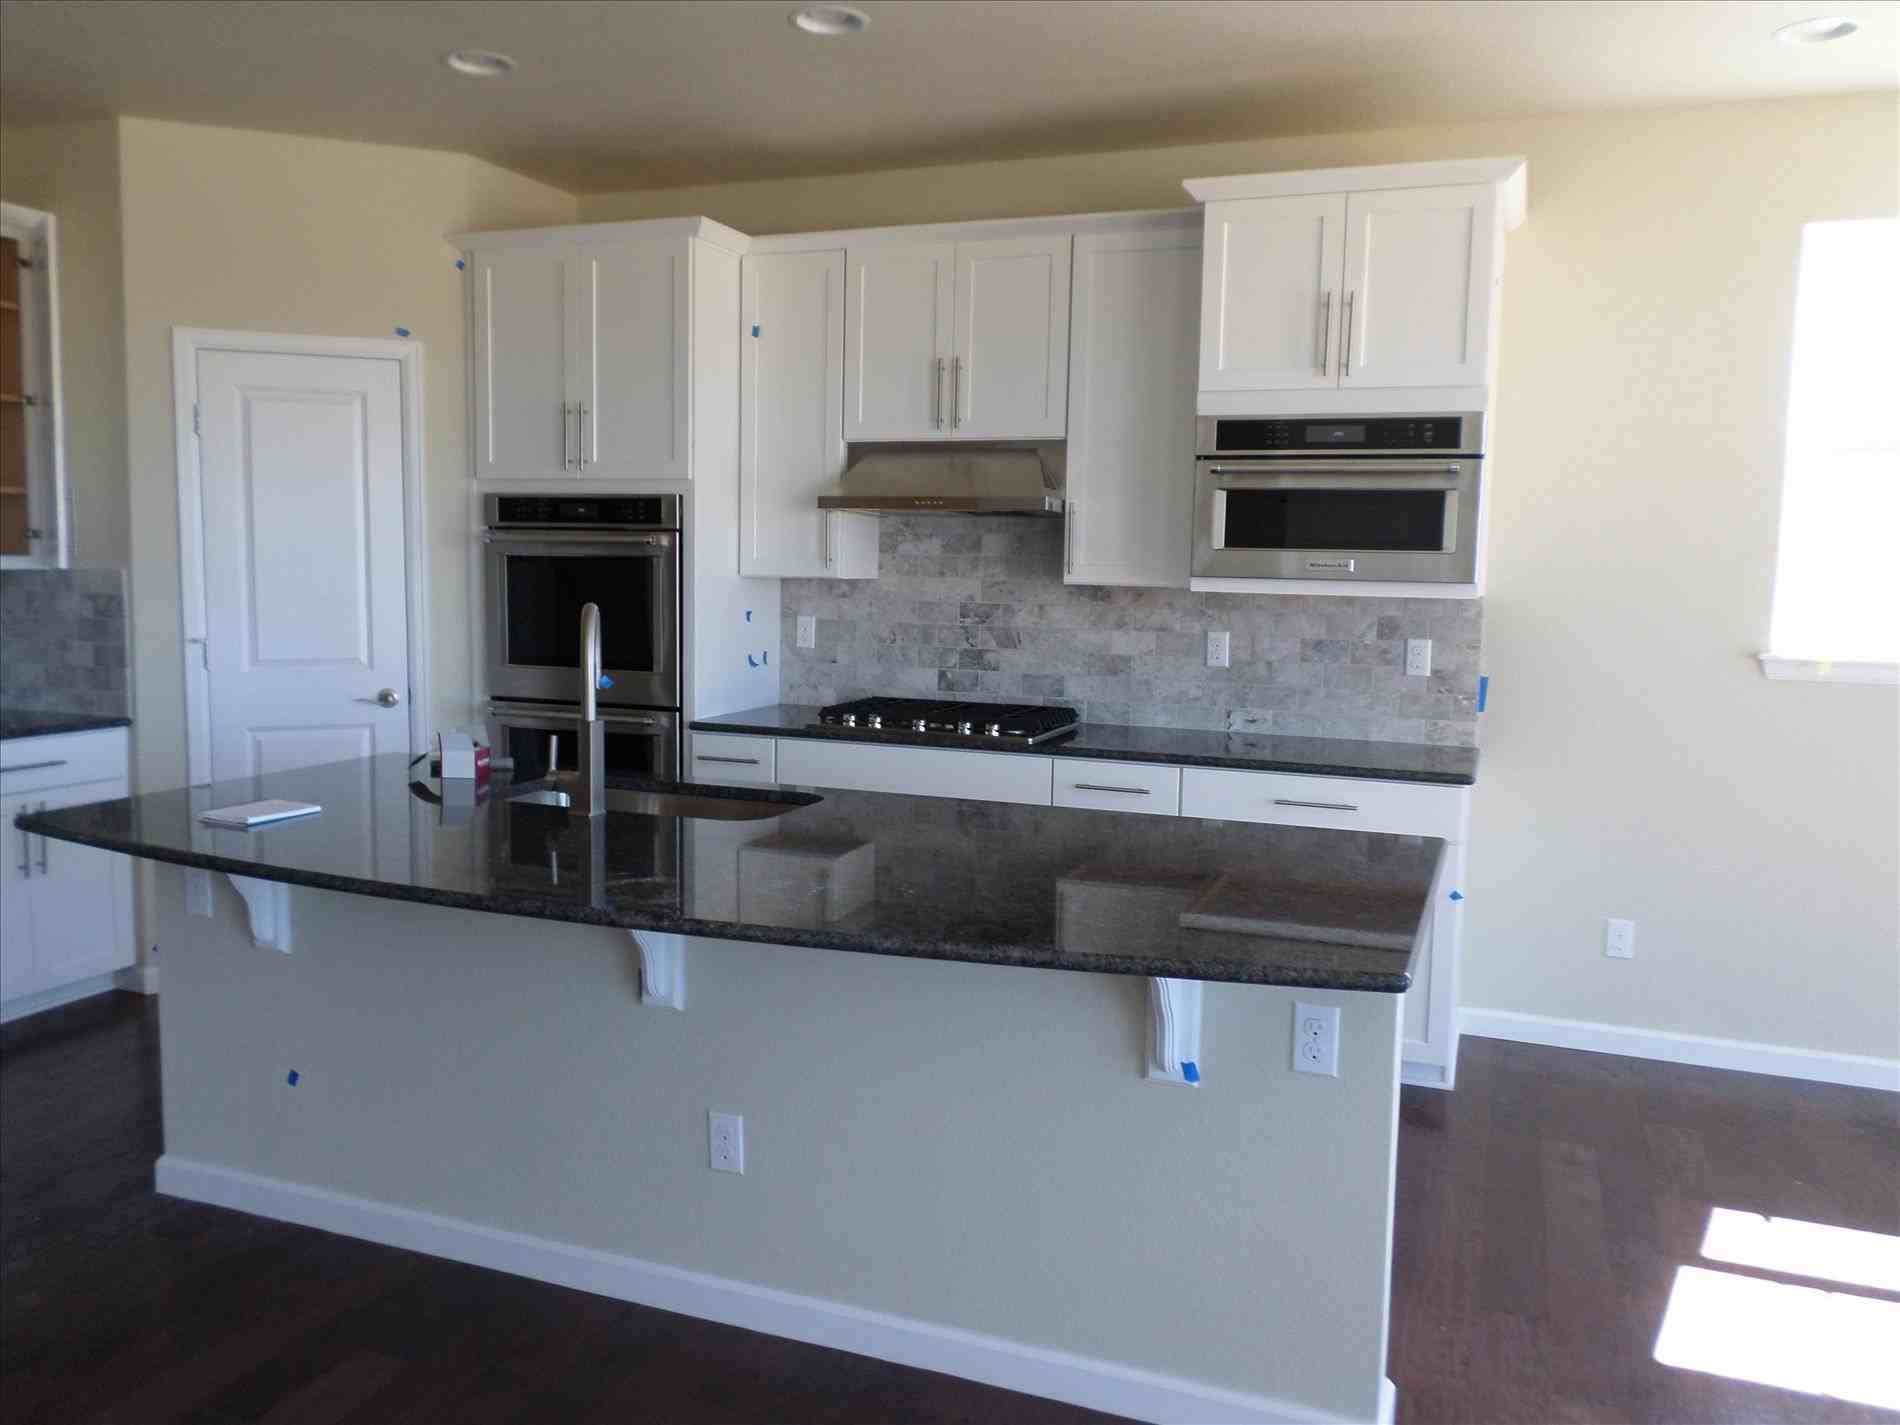 How To Grind Granite Countertops Leathered Granite Countertops Cost Randolph Indoor And